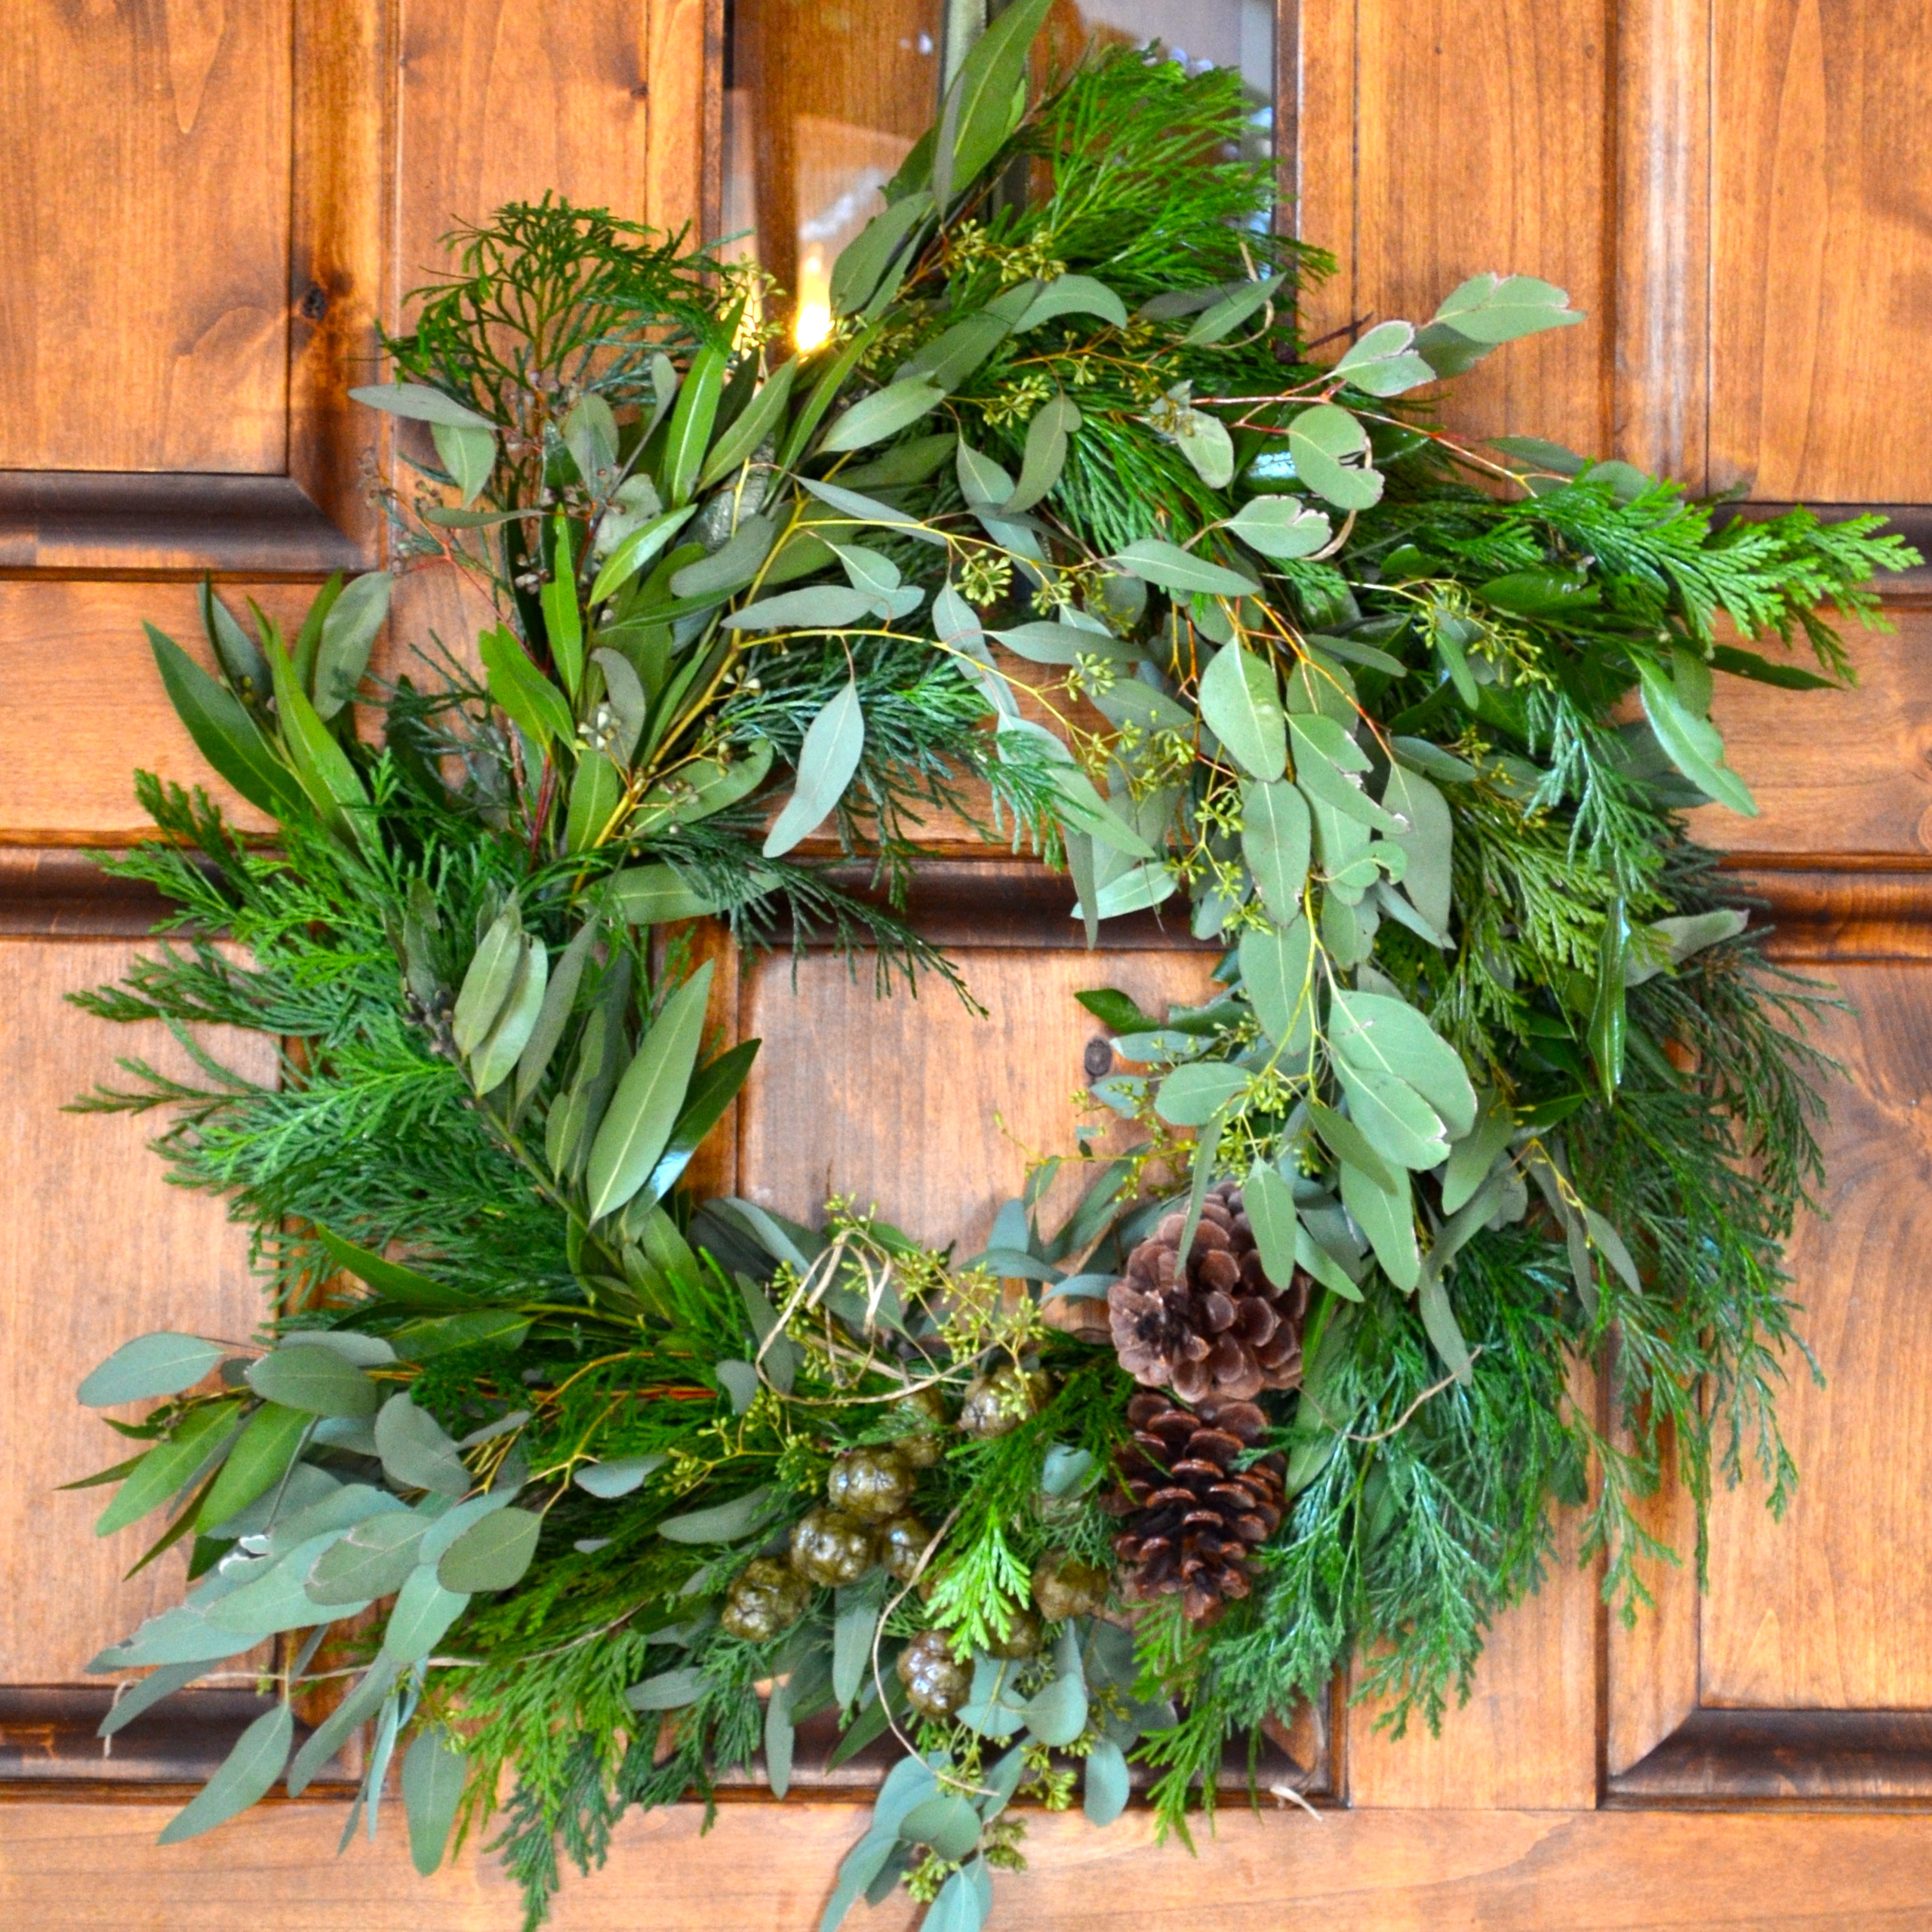 learn howto make your own christmas wreath diy tutorial with former supermodel nancy hunter corbett